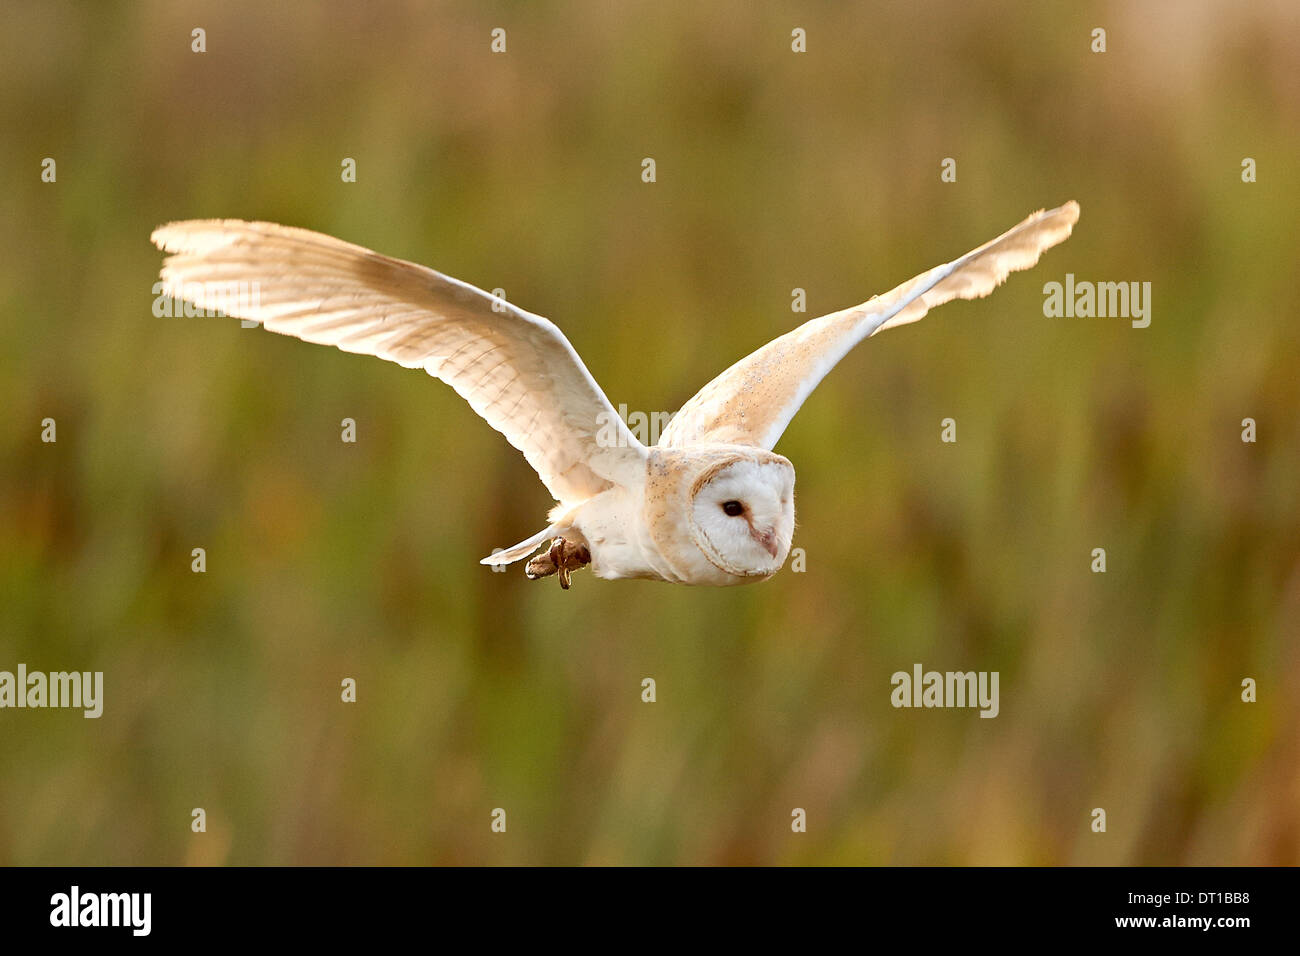 A Barn Owl flying a over fields at sunset - Stock Image